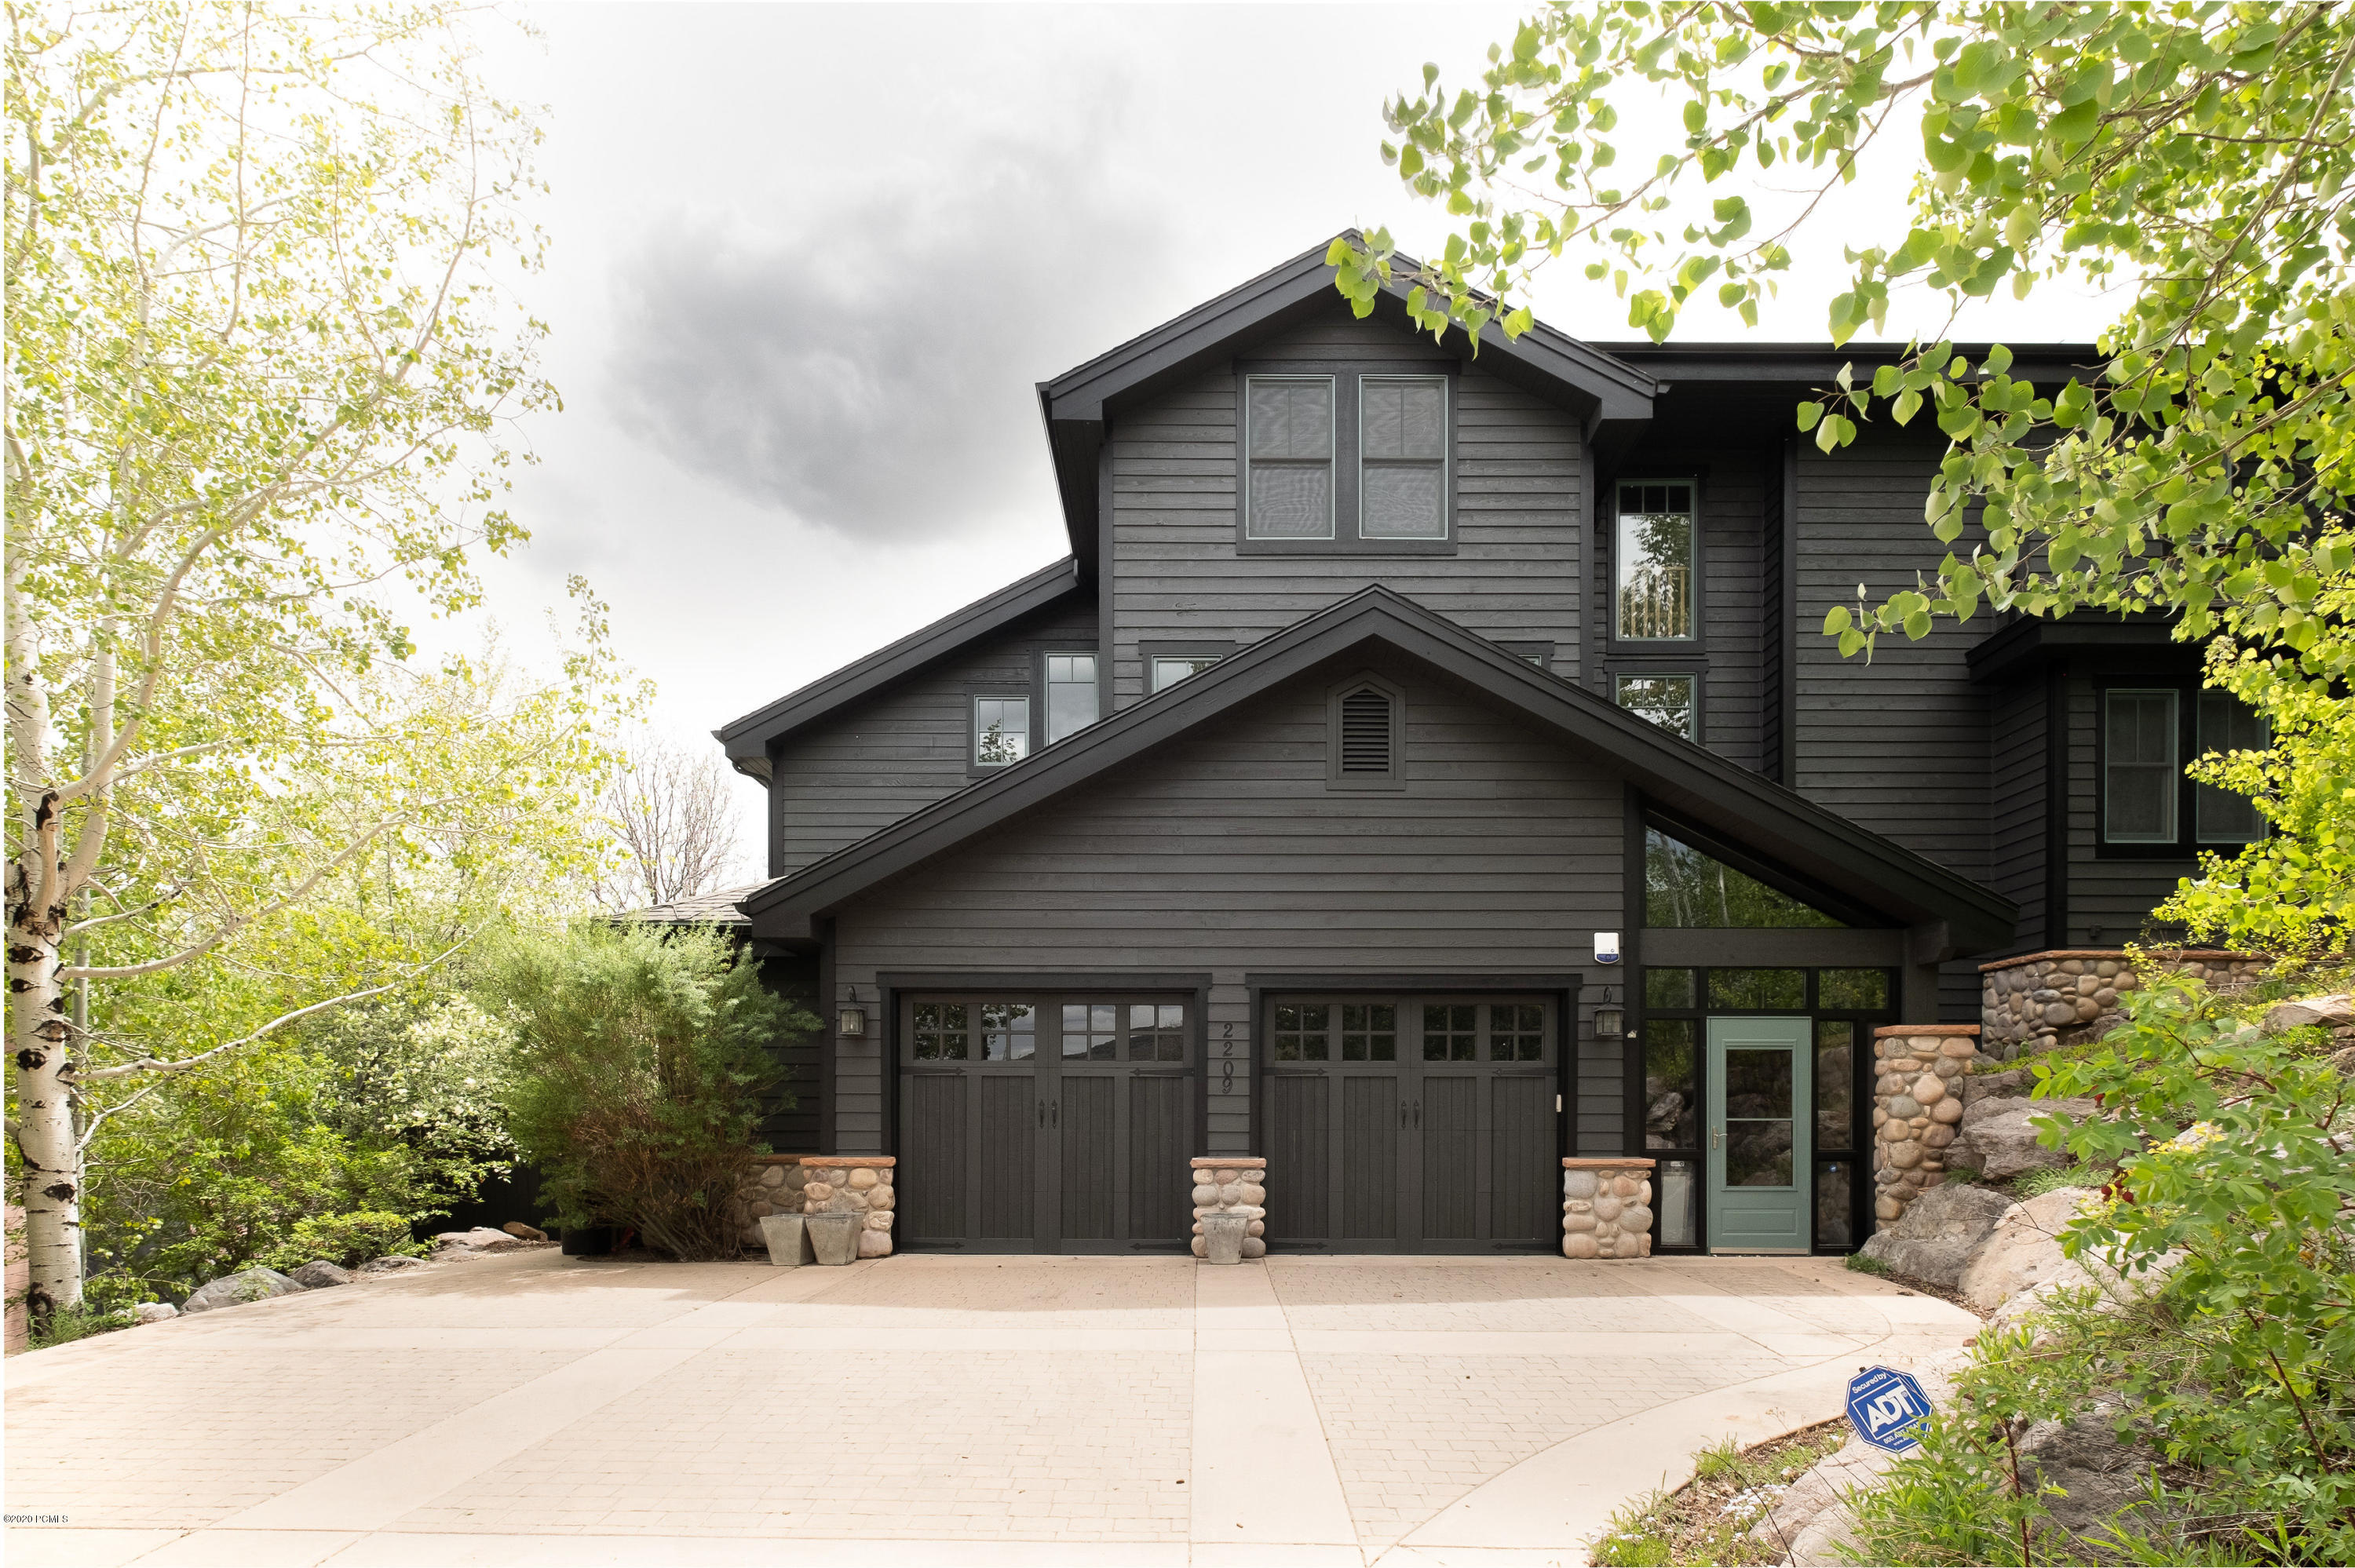 2209 Morning Star Drive, Park City, Utah 84060, 5 Bedrooms Bedrooms, ,5 BathroomsBathrooms,Single Family,For Sale,Morning Star,20190109112430415765000000